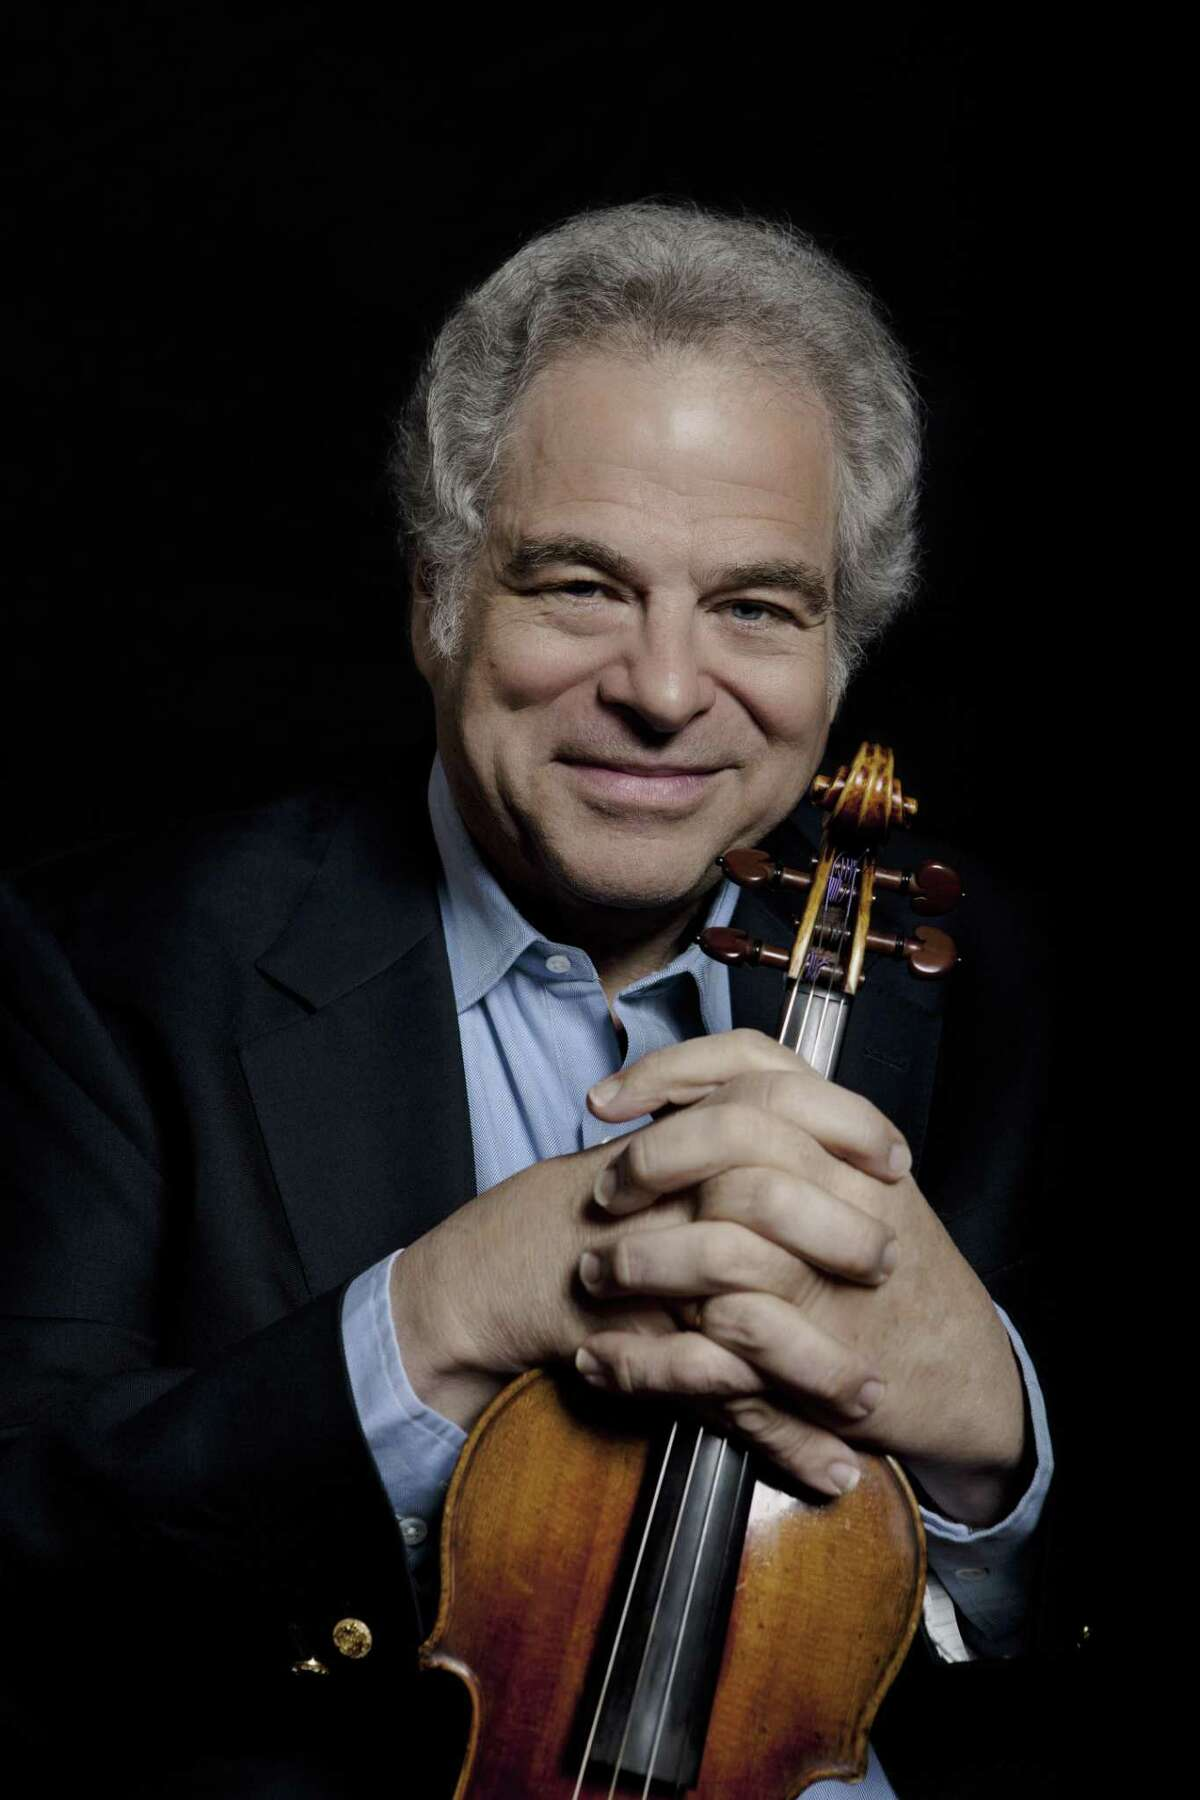 Violinist Itzhak Perlman performed a recital concert Thursday night at the Tobin Center for the Performing Arts.